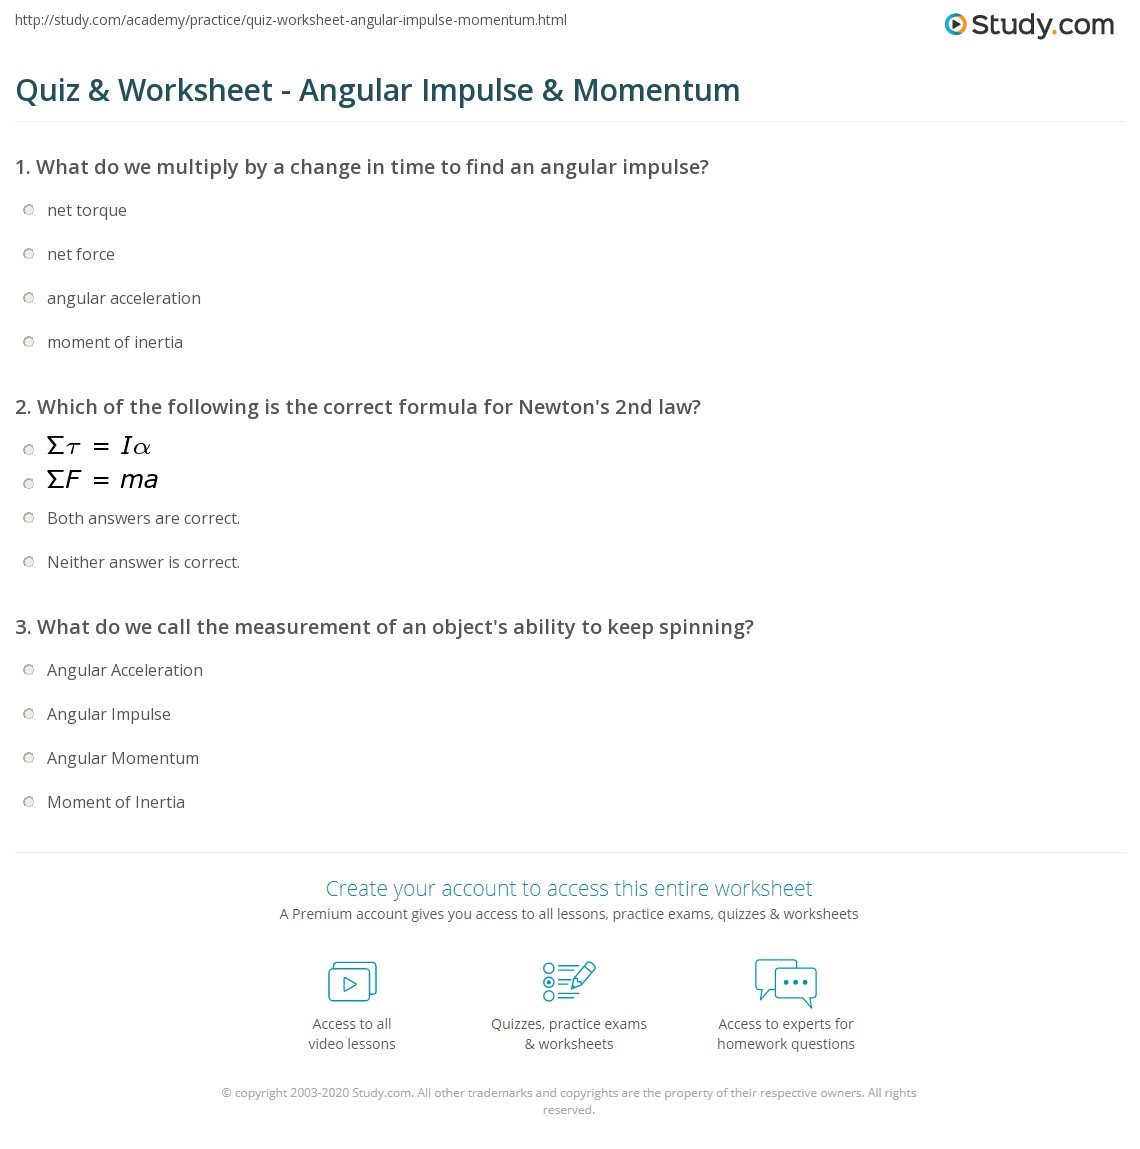 Quiz & Worksheet - Angular Impulse & Momentum | Study.com